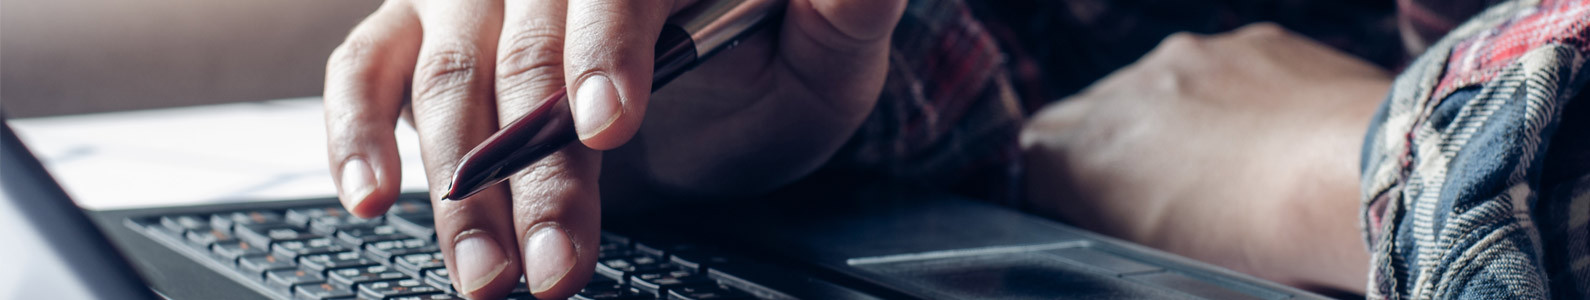 Close up of a man's hand holding a pen above a laptop keyboard